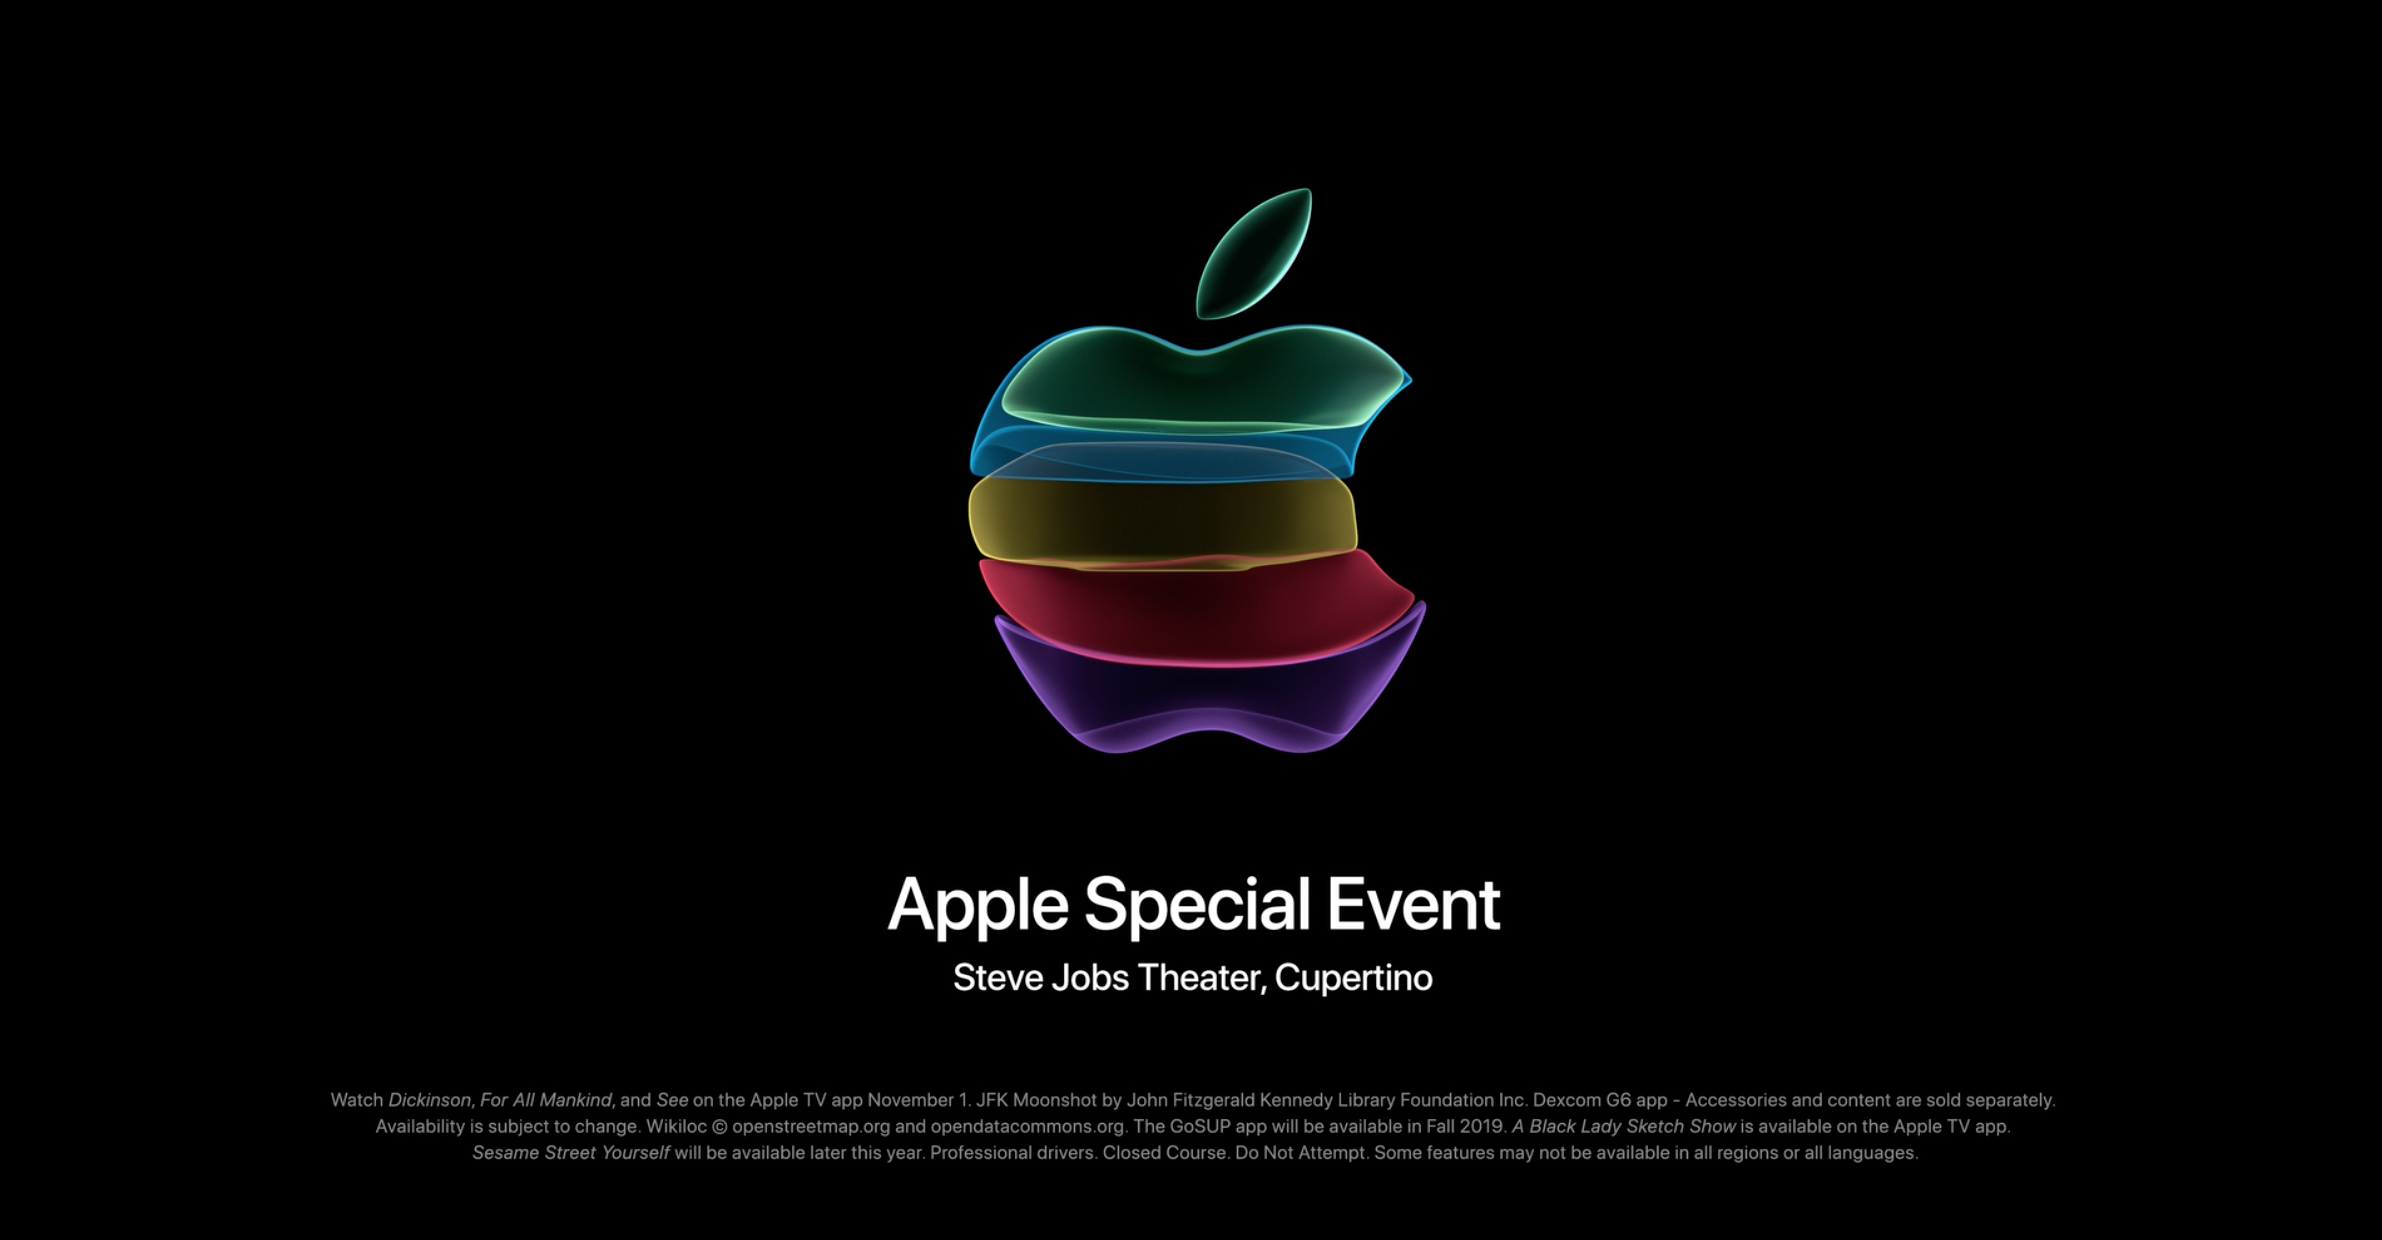 Apple Special Event 2019: What's new?